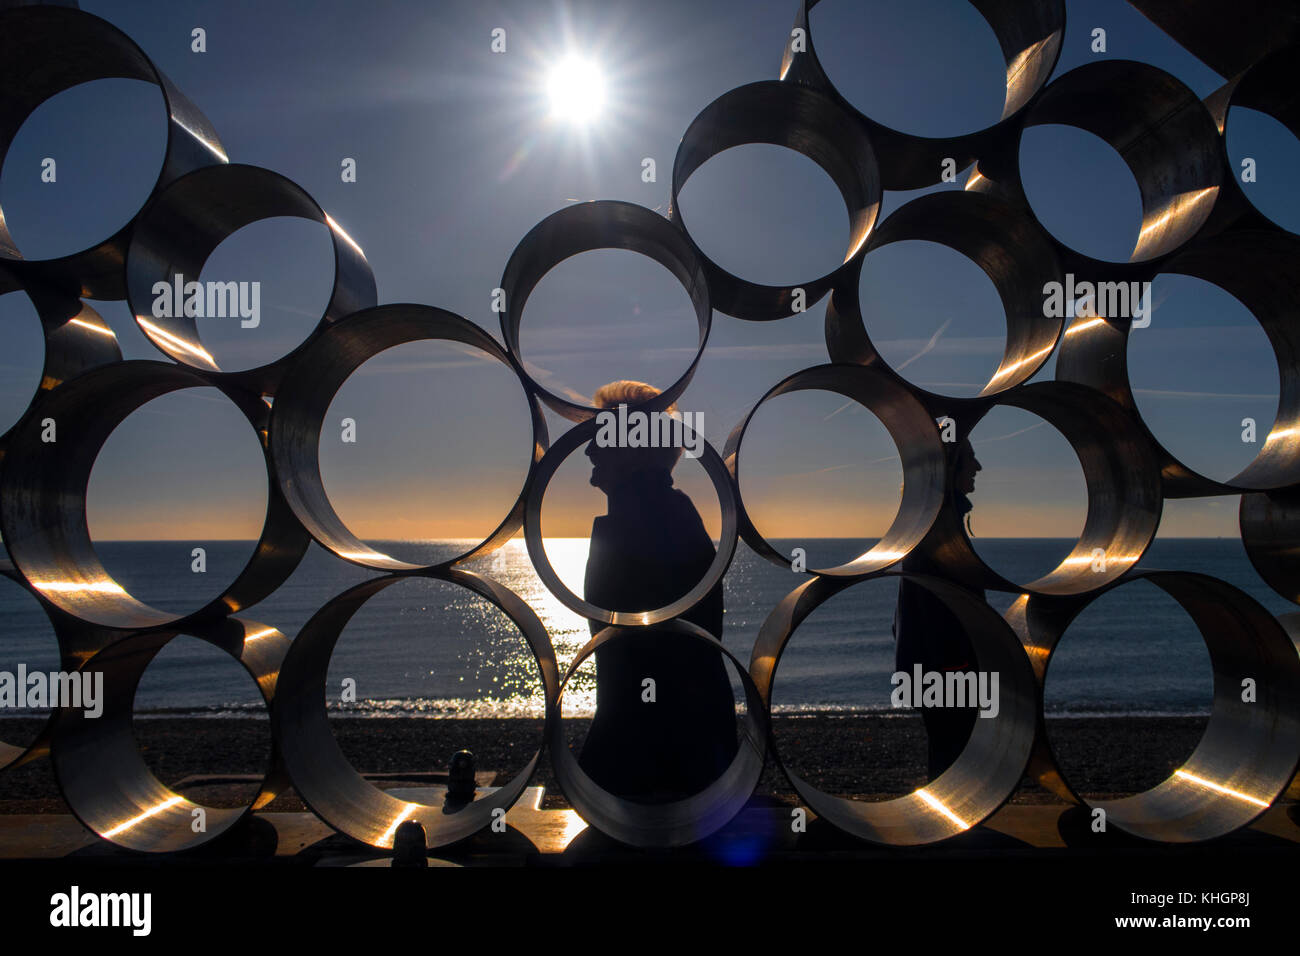 Seaton, Devon. 17th Nov, 2017. UK Weather. People walk past the Waves sculpture on the seafront at Seaton, Devon, Stock Photo